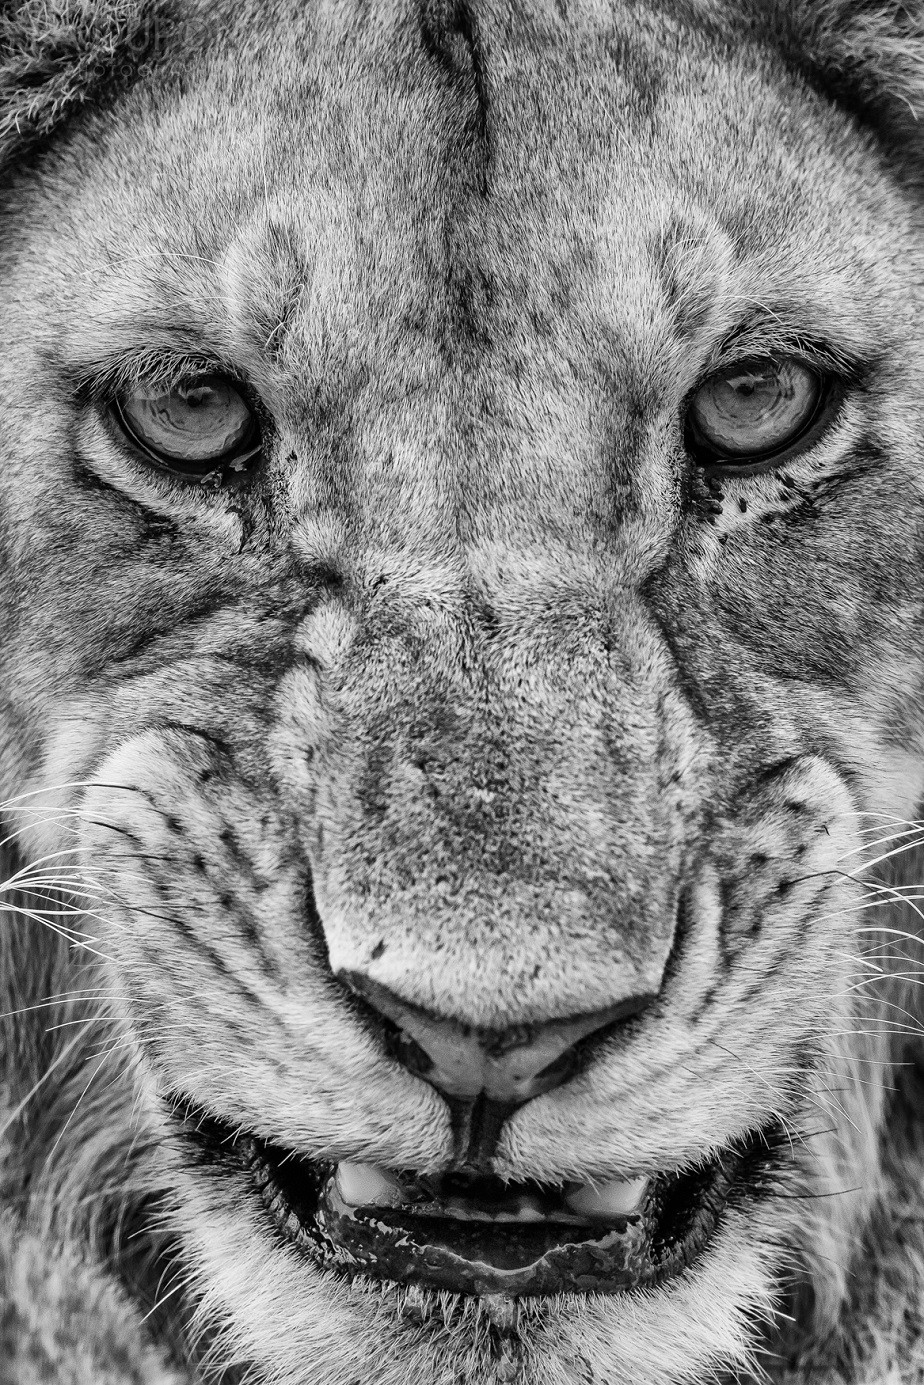 Face of a lion in black and white, Serengeti National Park, by Jacques-André Dupont